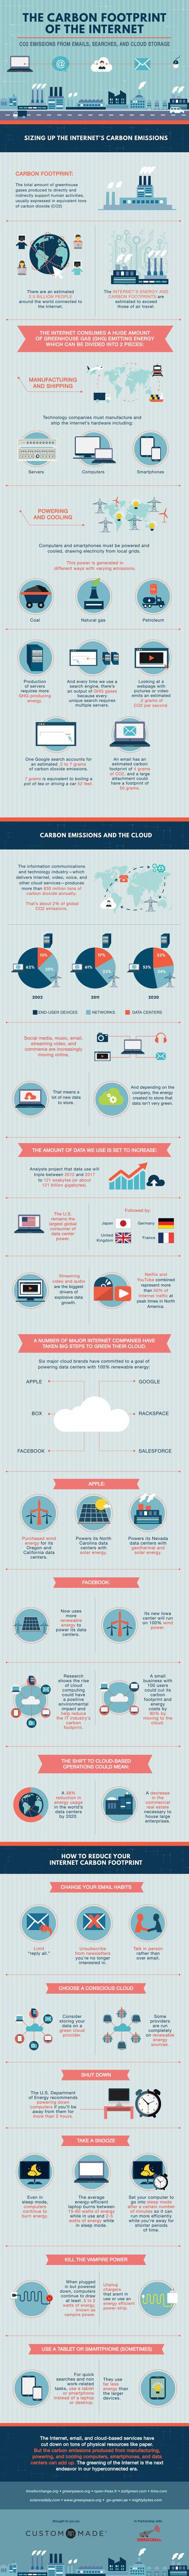 What's the carbon footprint of the Internet? [Infographic] | green infographics…